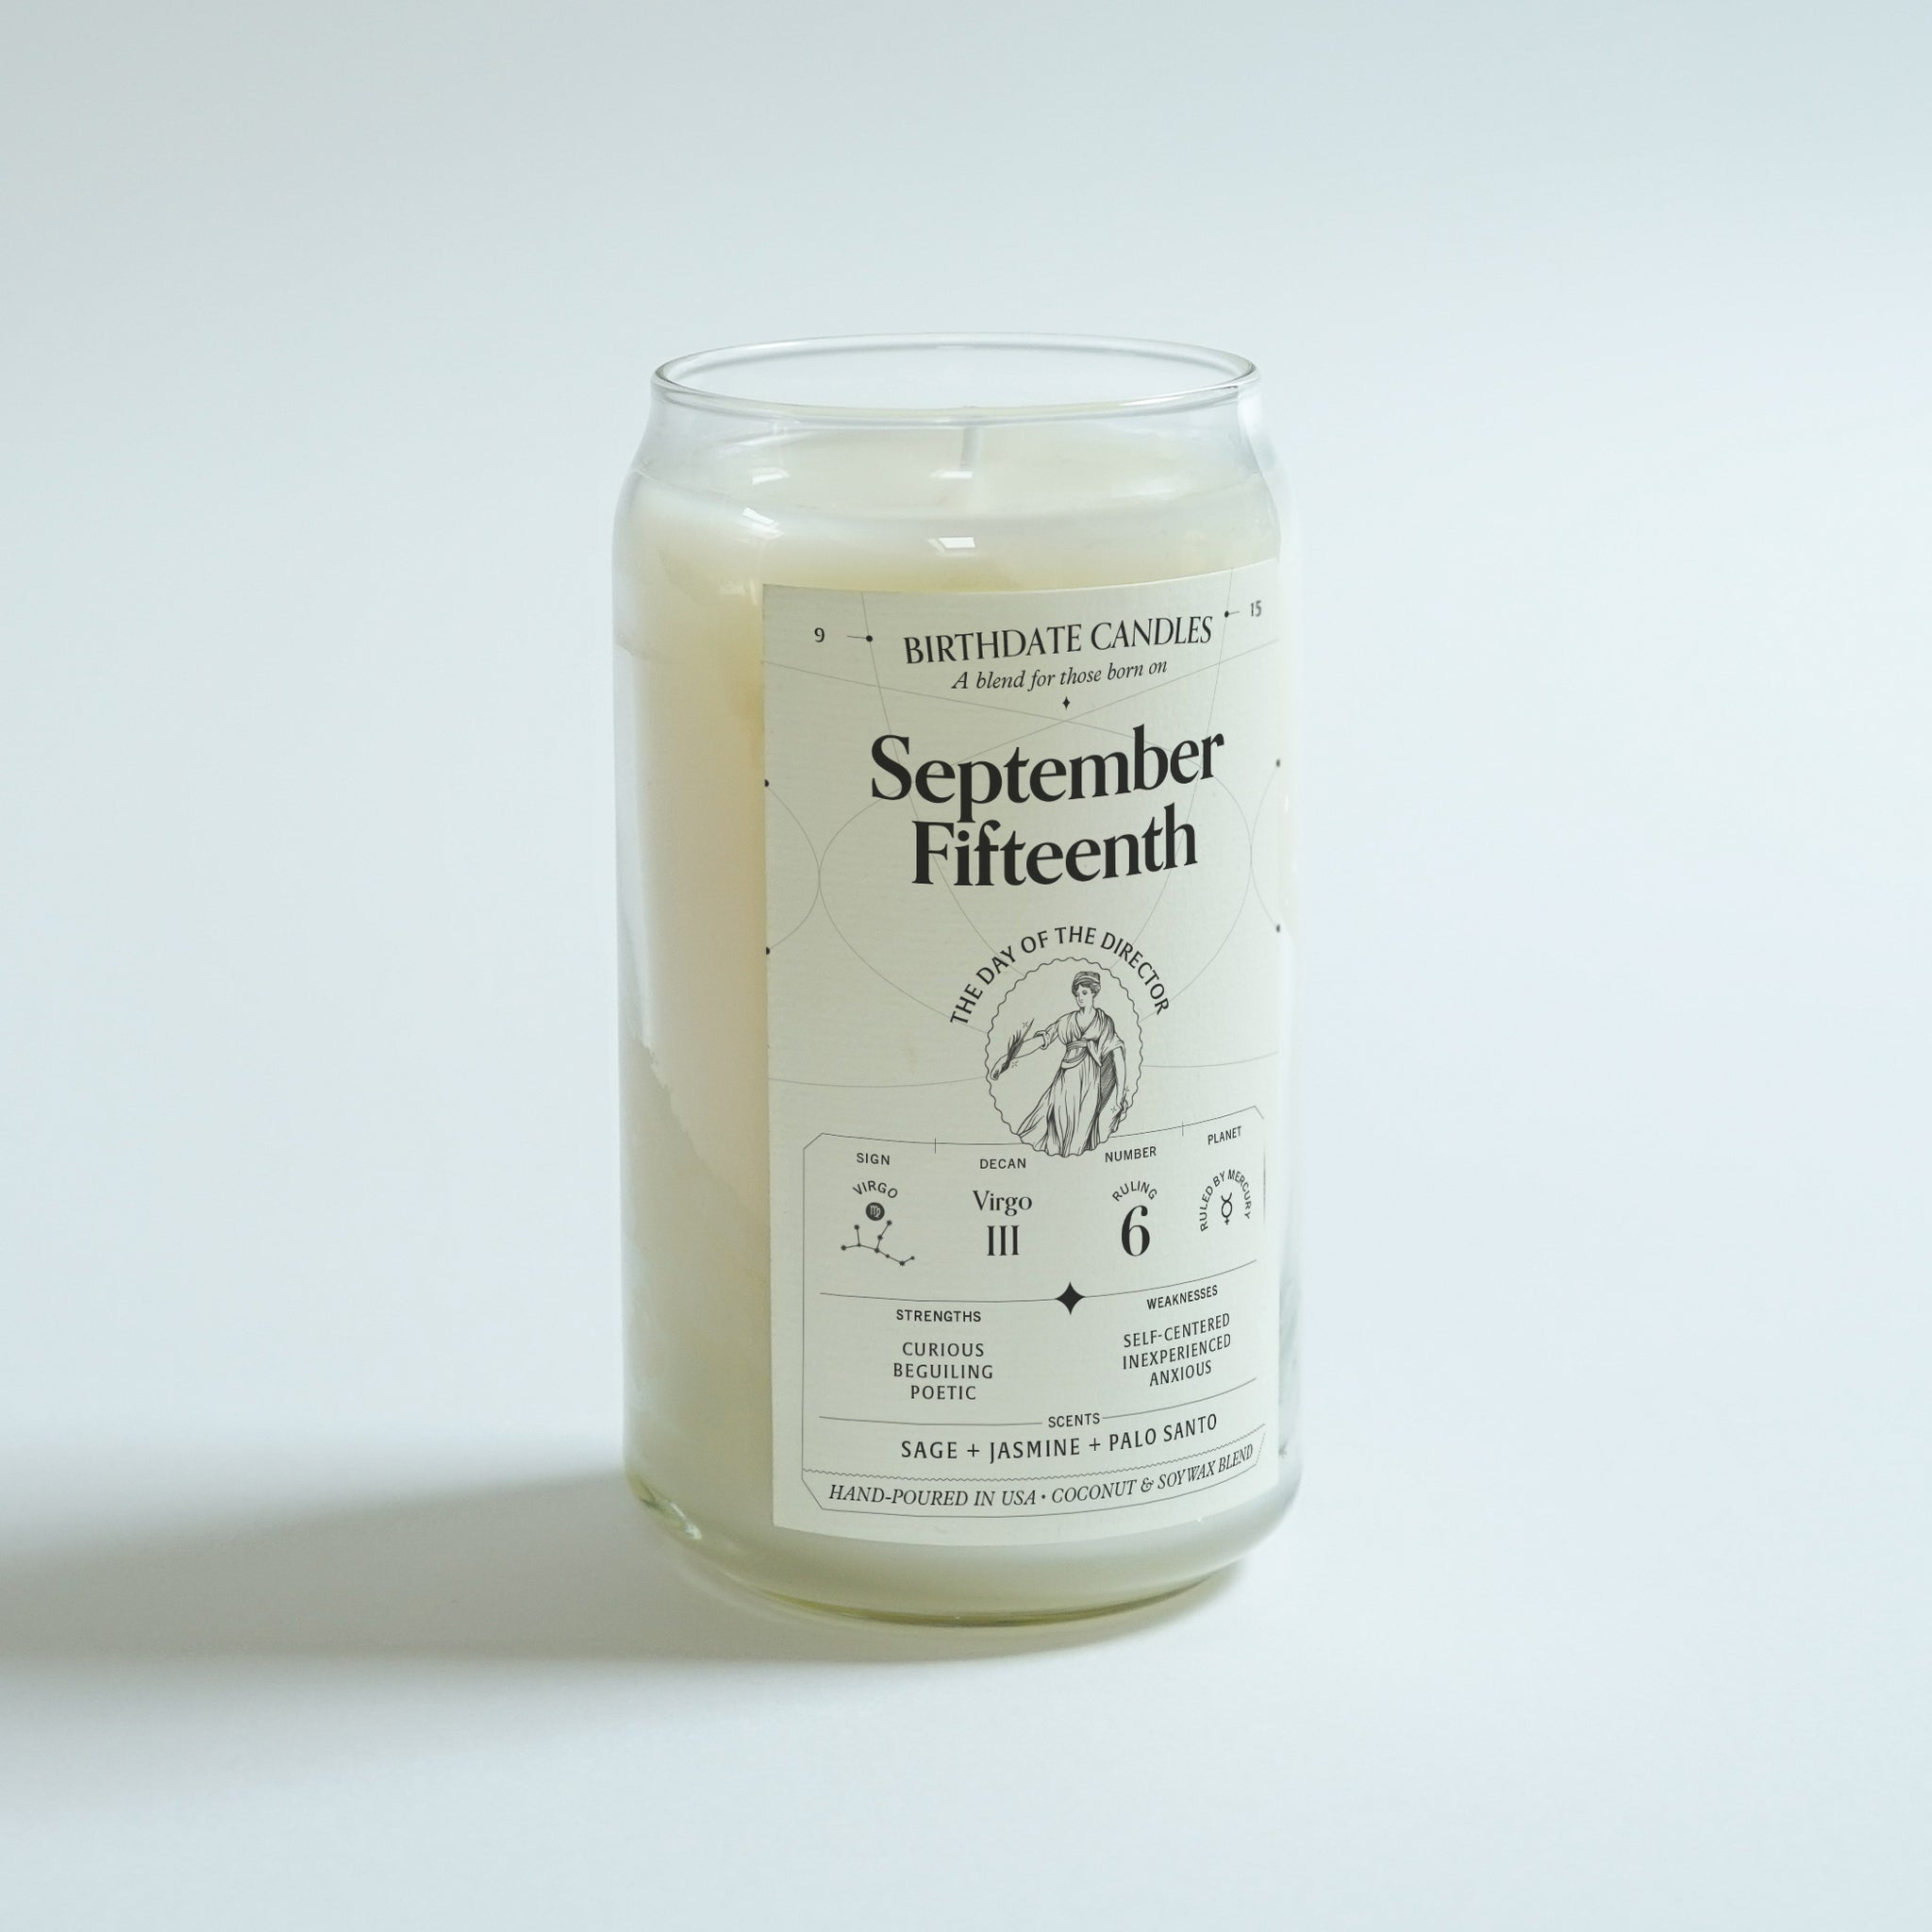 The September Fifteenth Birthday Candle